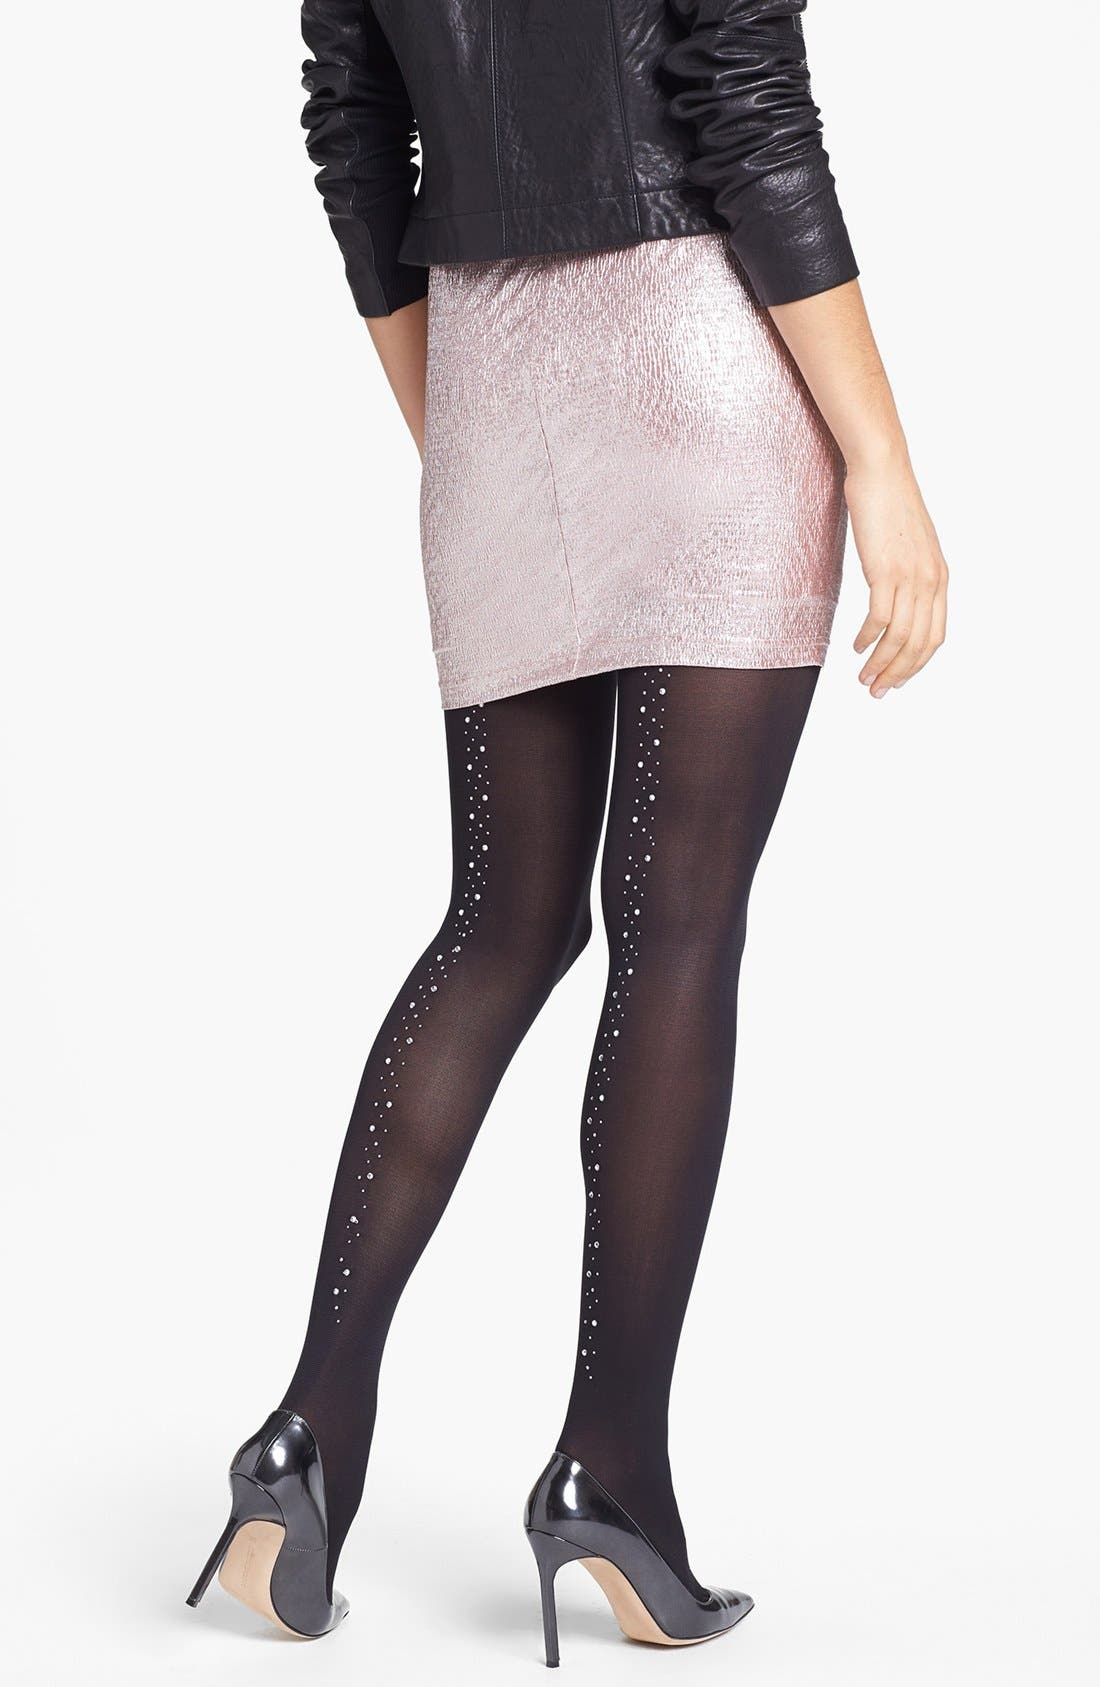 Main Image - Pretty Polly Embellished Back Seam Tights